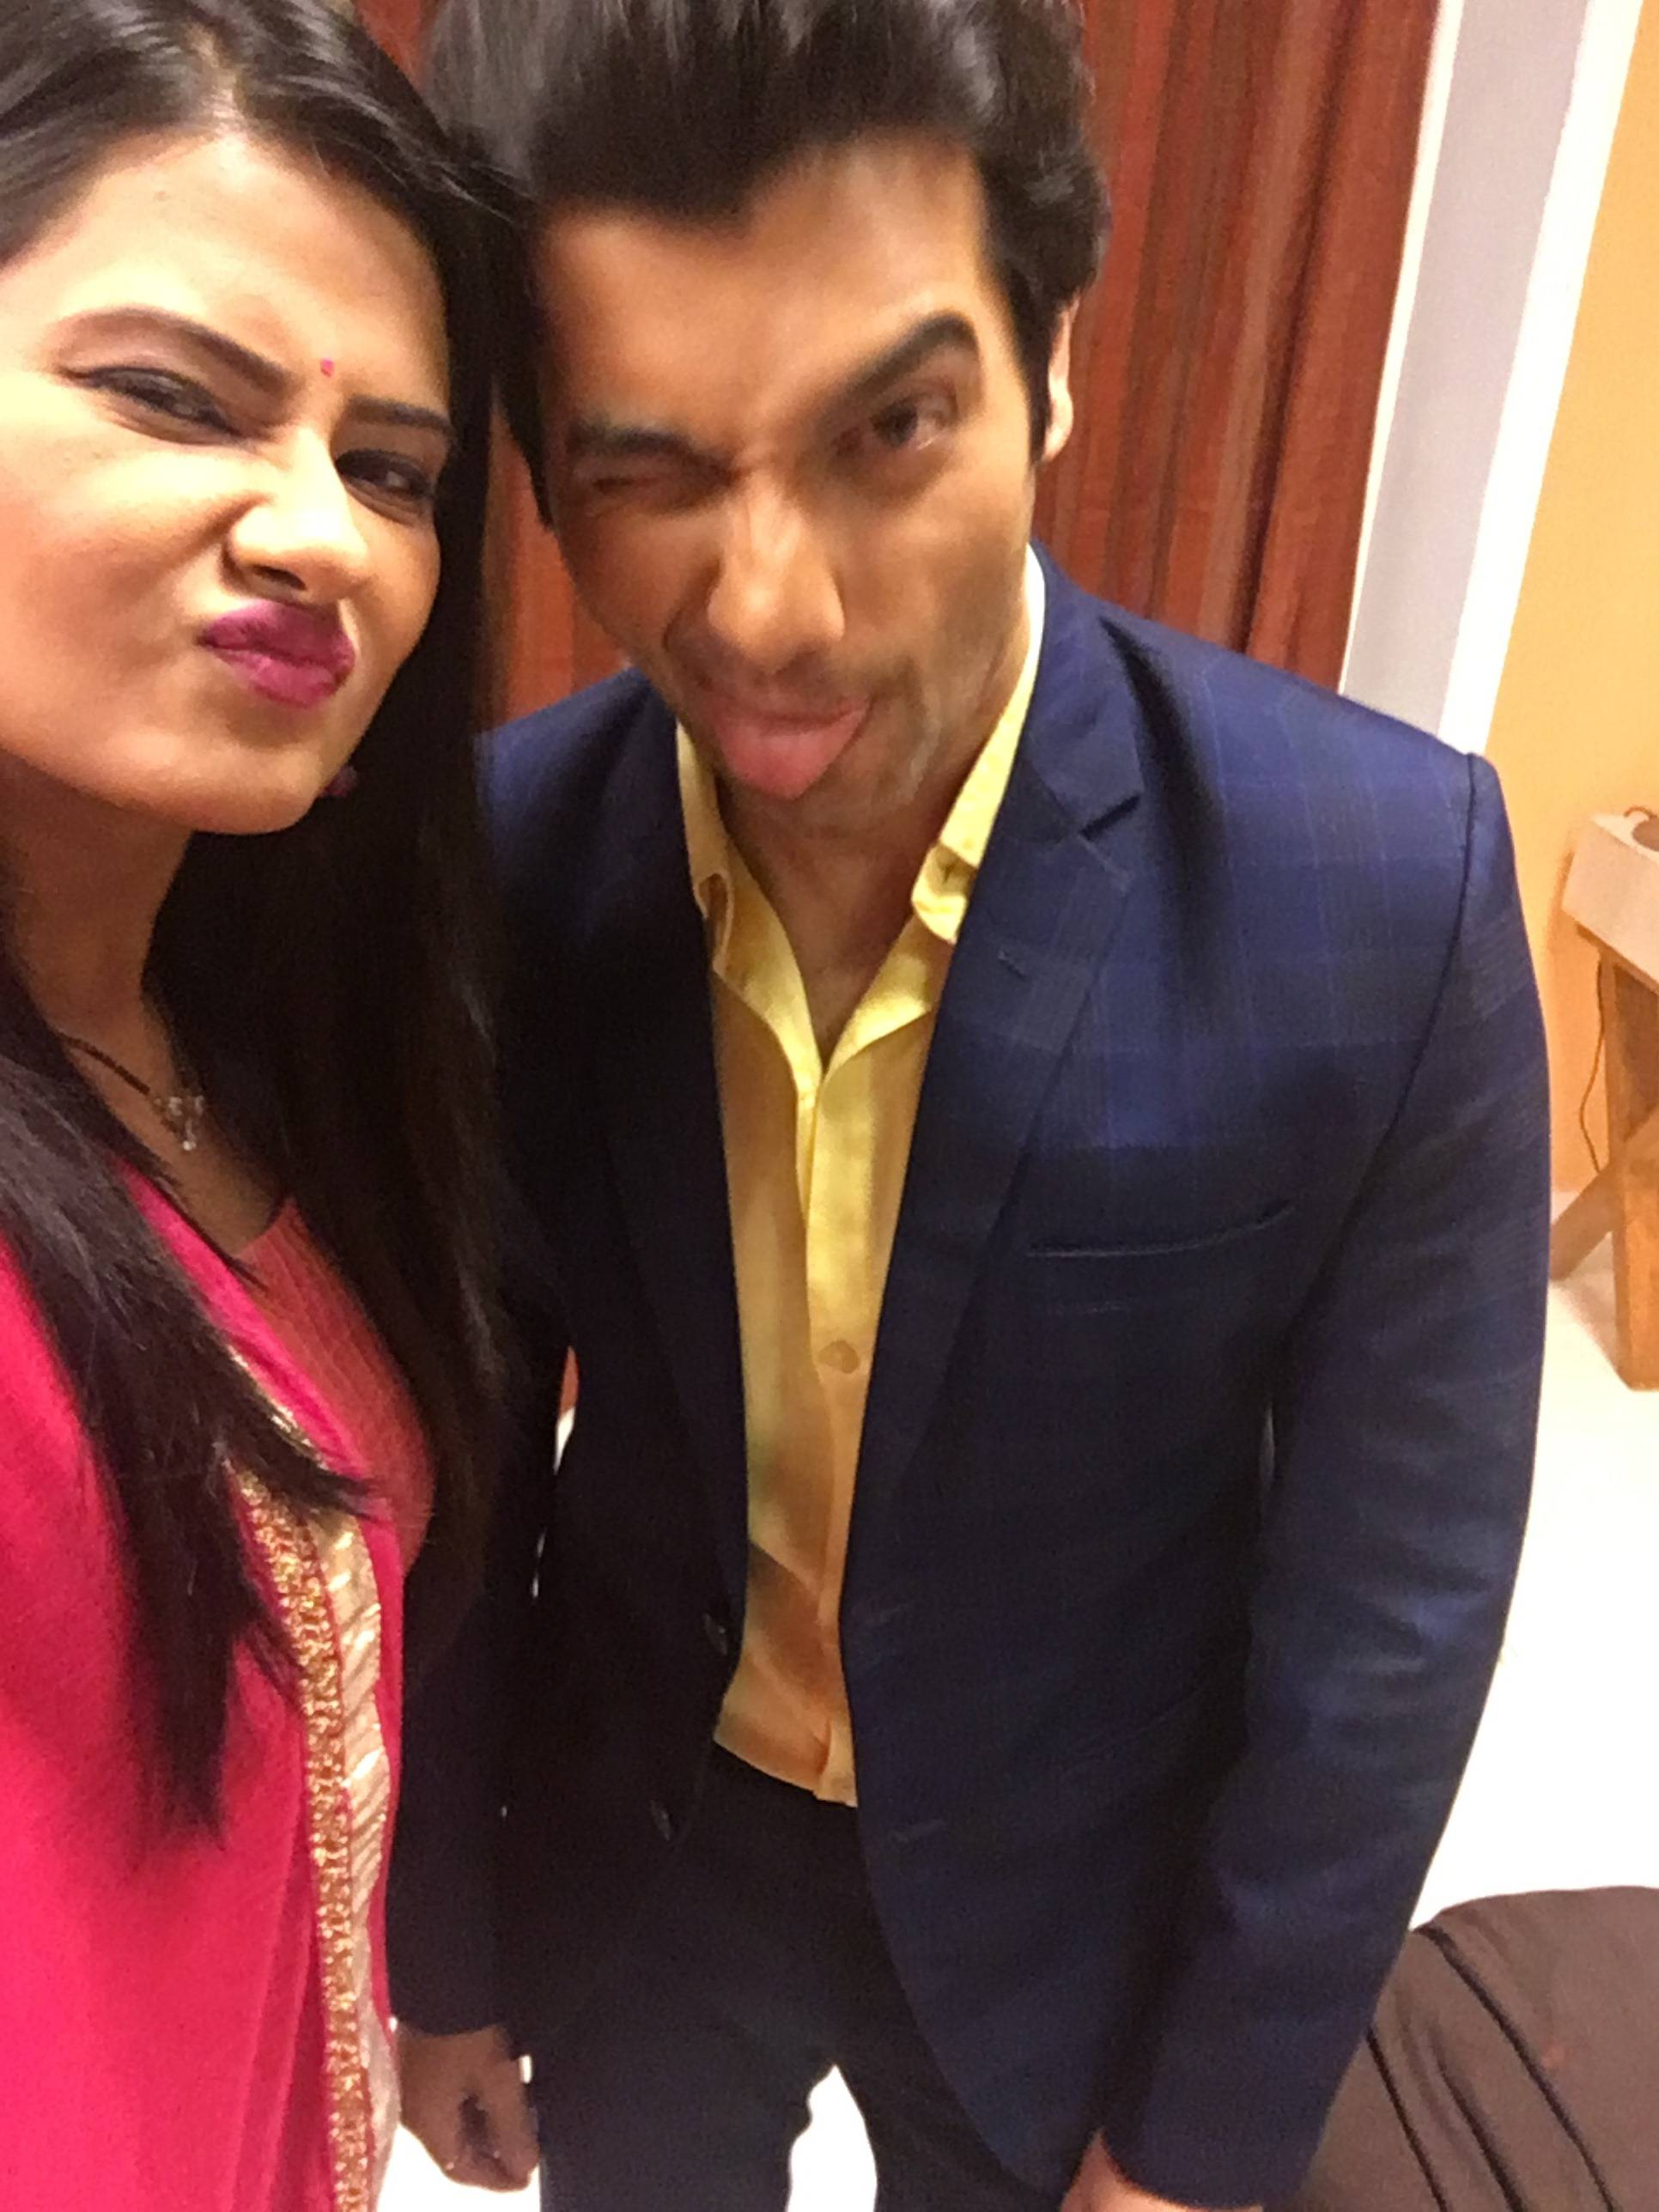 Sharad and Kratika from 'Kasam' pose for some adorable selfies